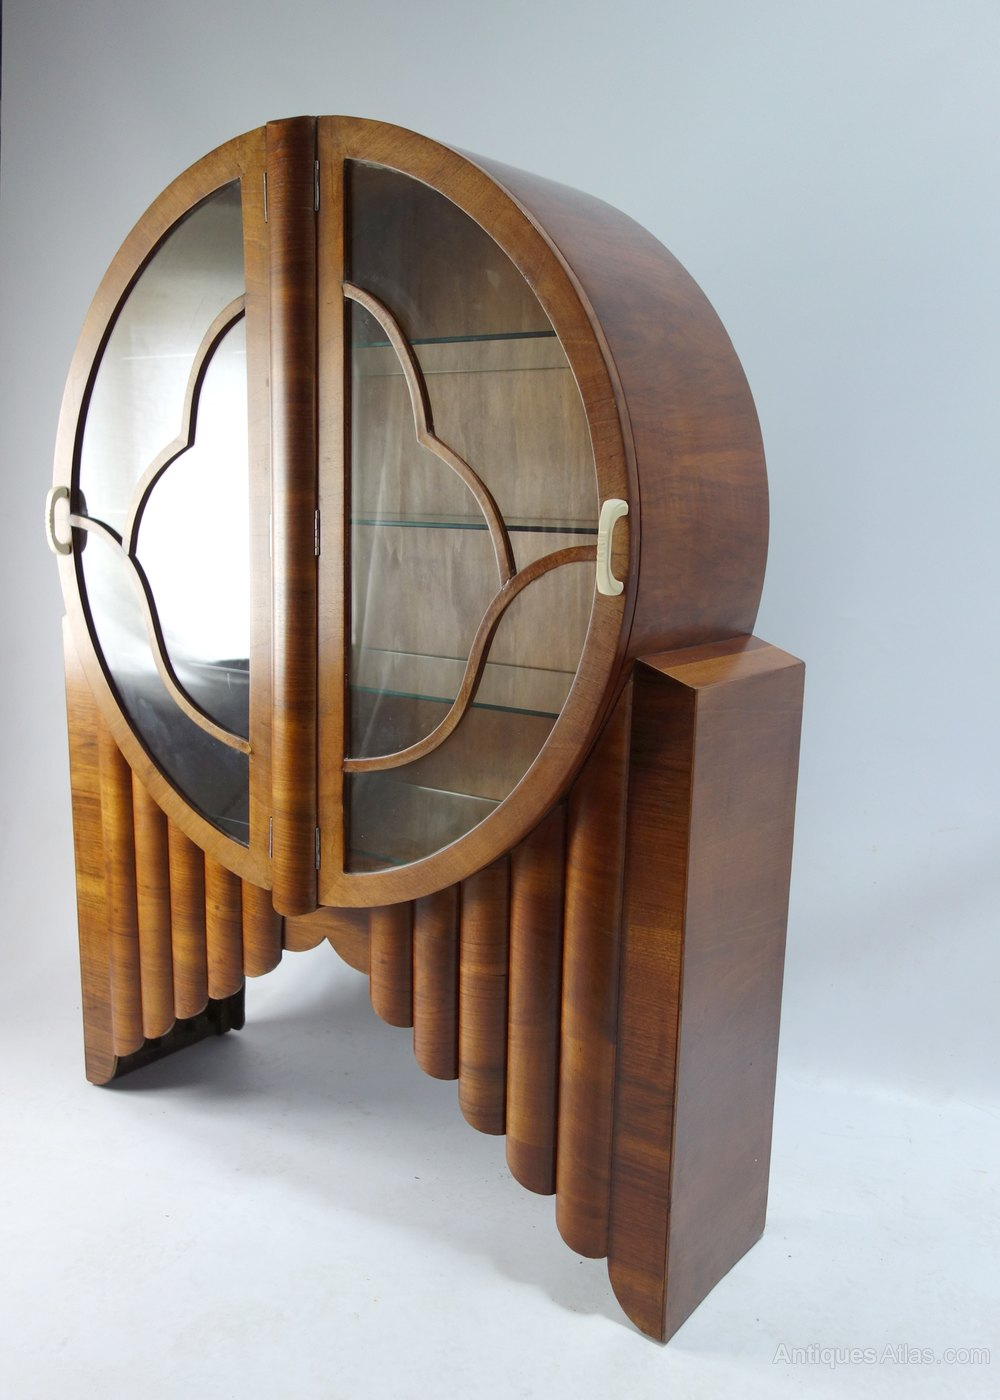 Original Art Deco Rocket Circular Display Cabinet - Antiques Atlas